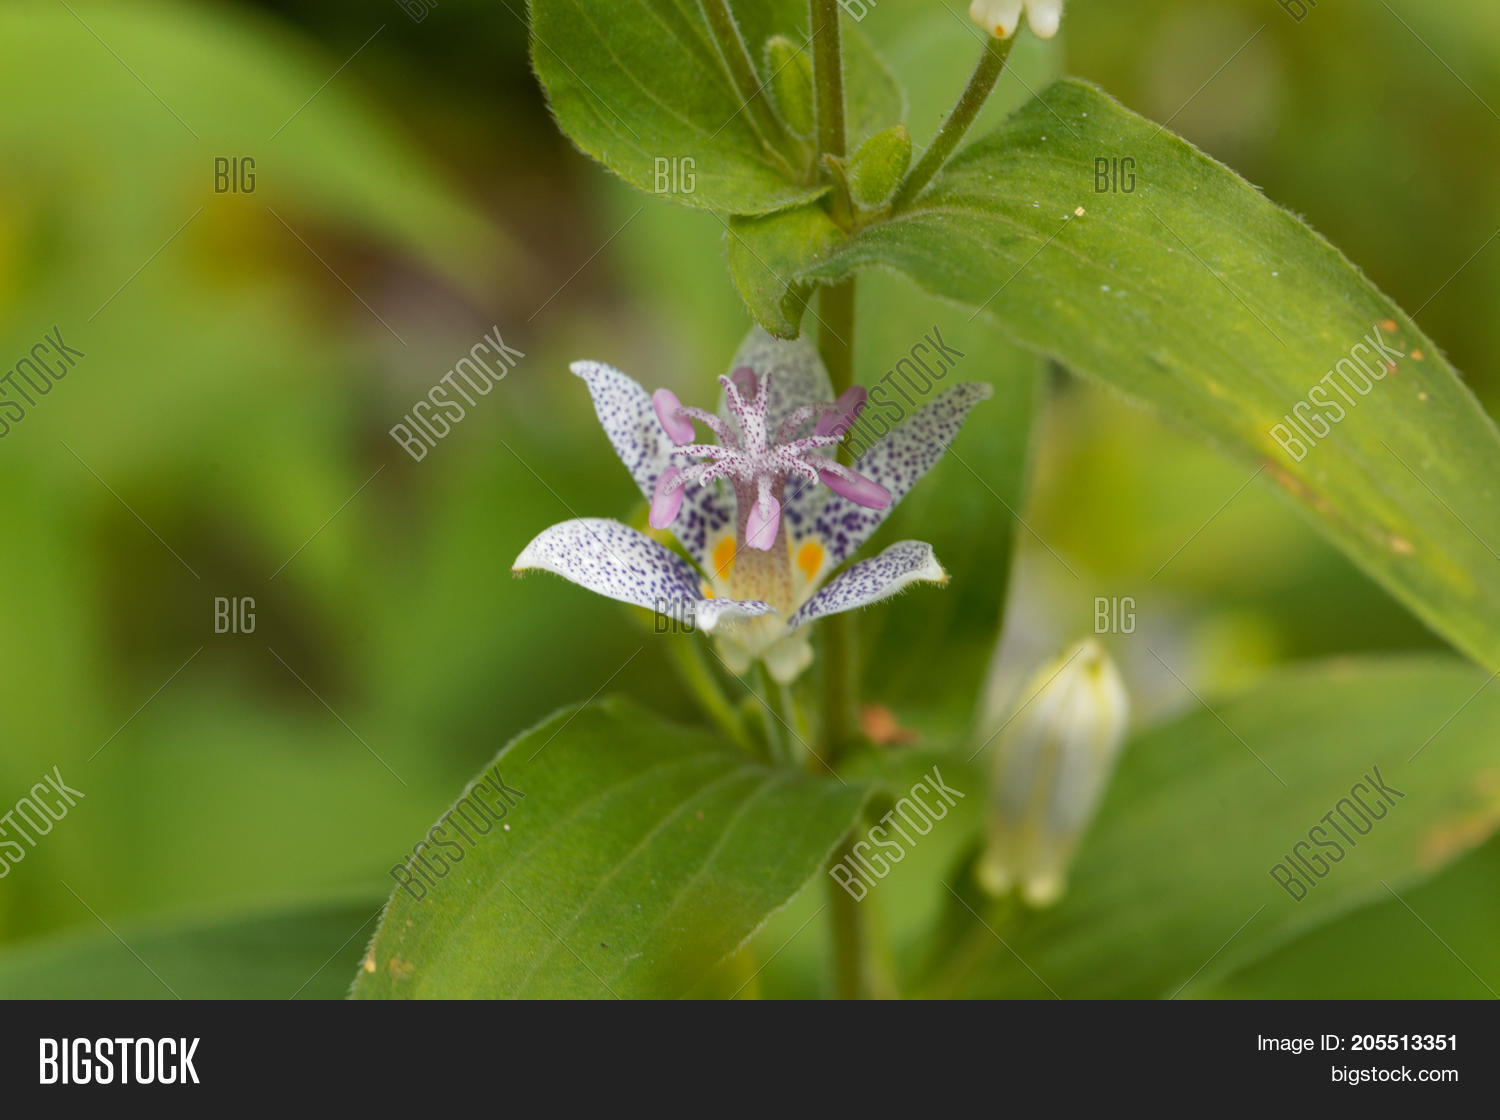 Toad lily flower tricyrtis hirta image photo bigstock toad lily flower tricyrtis hirta izmirmasajfo